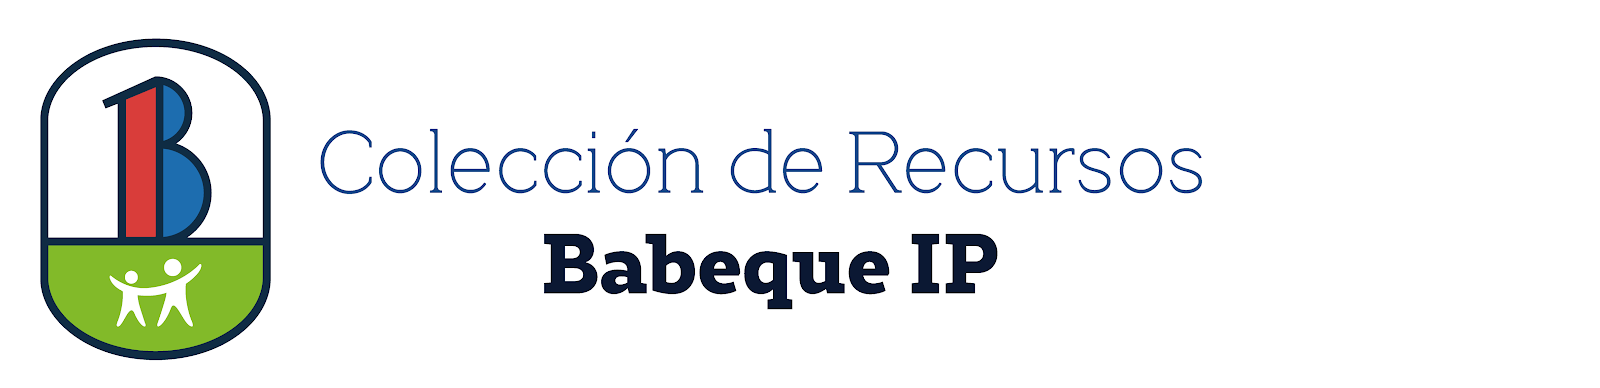 Babeque IP Blog